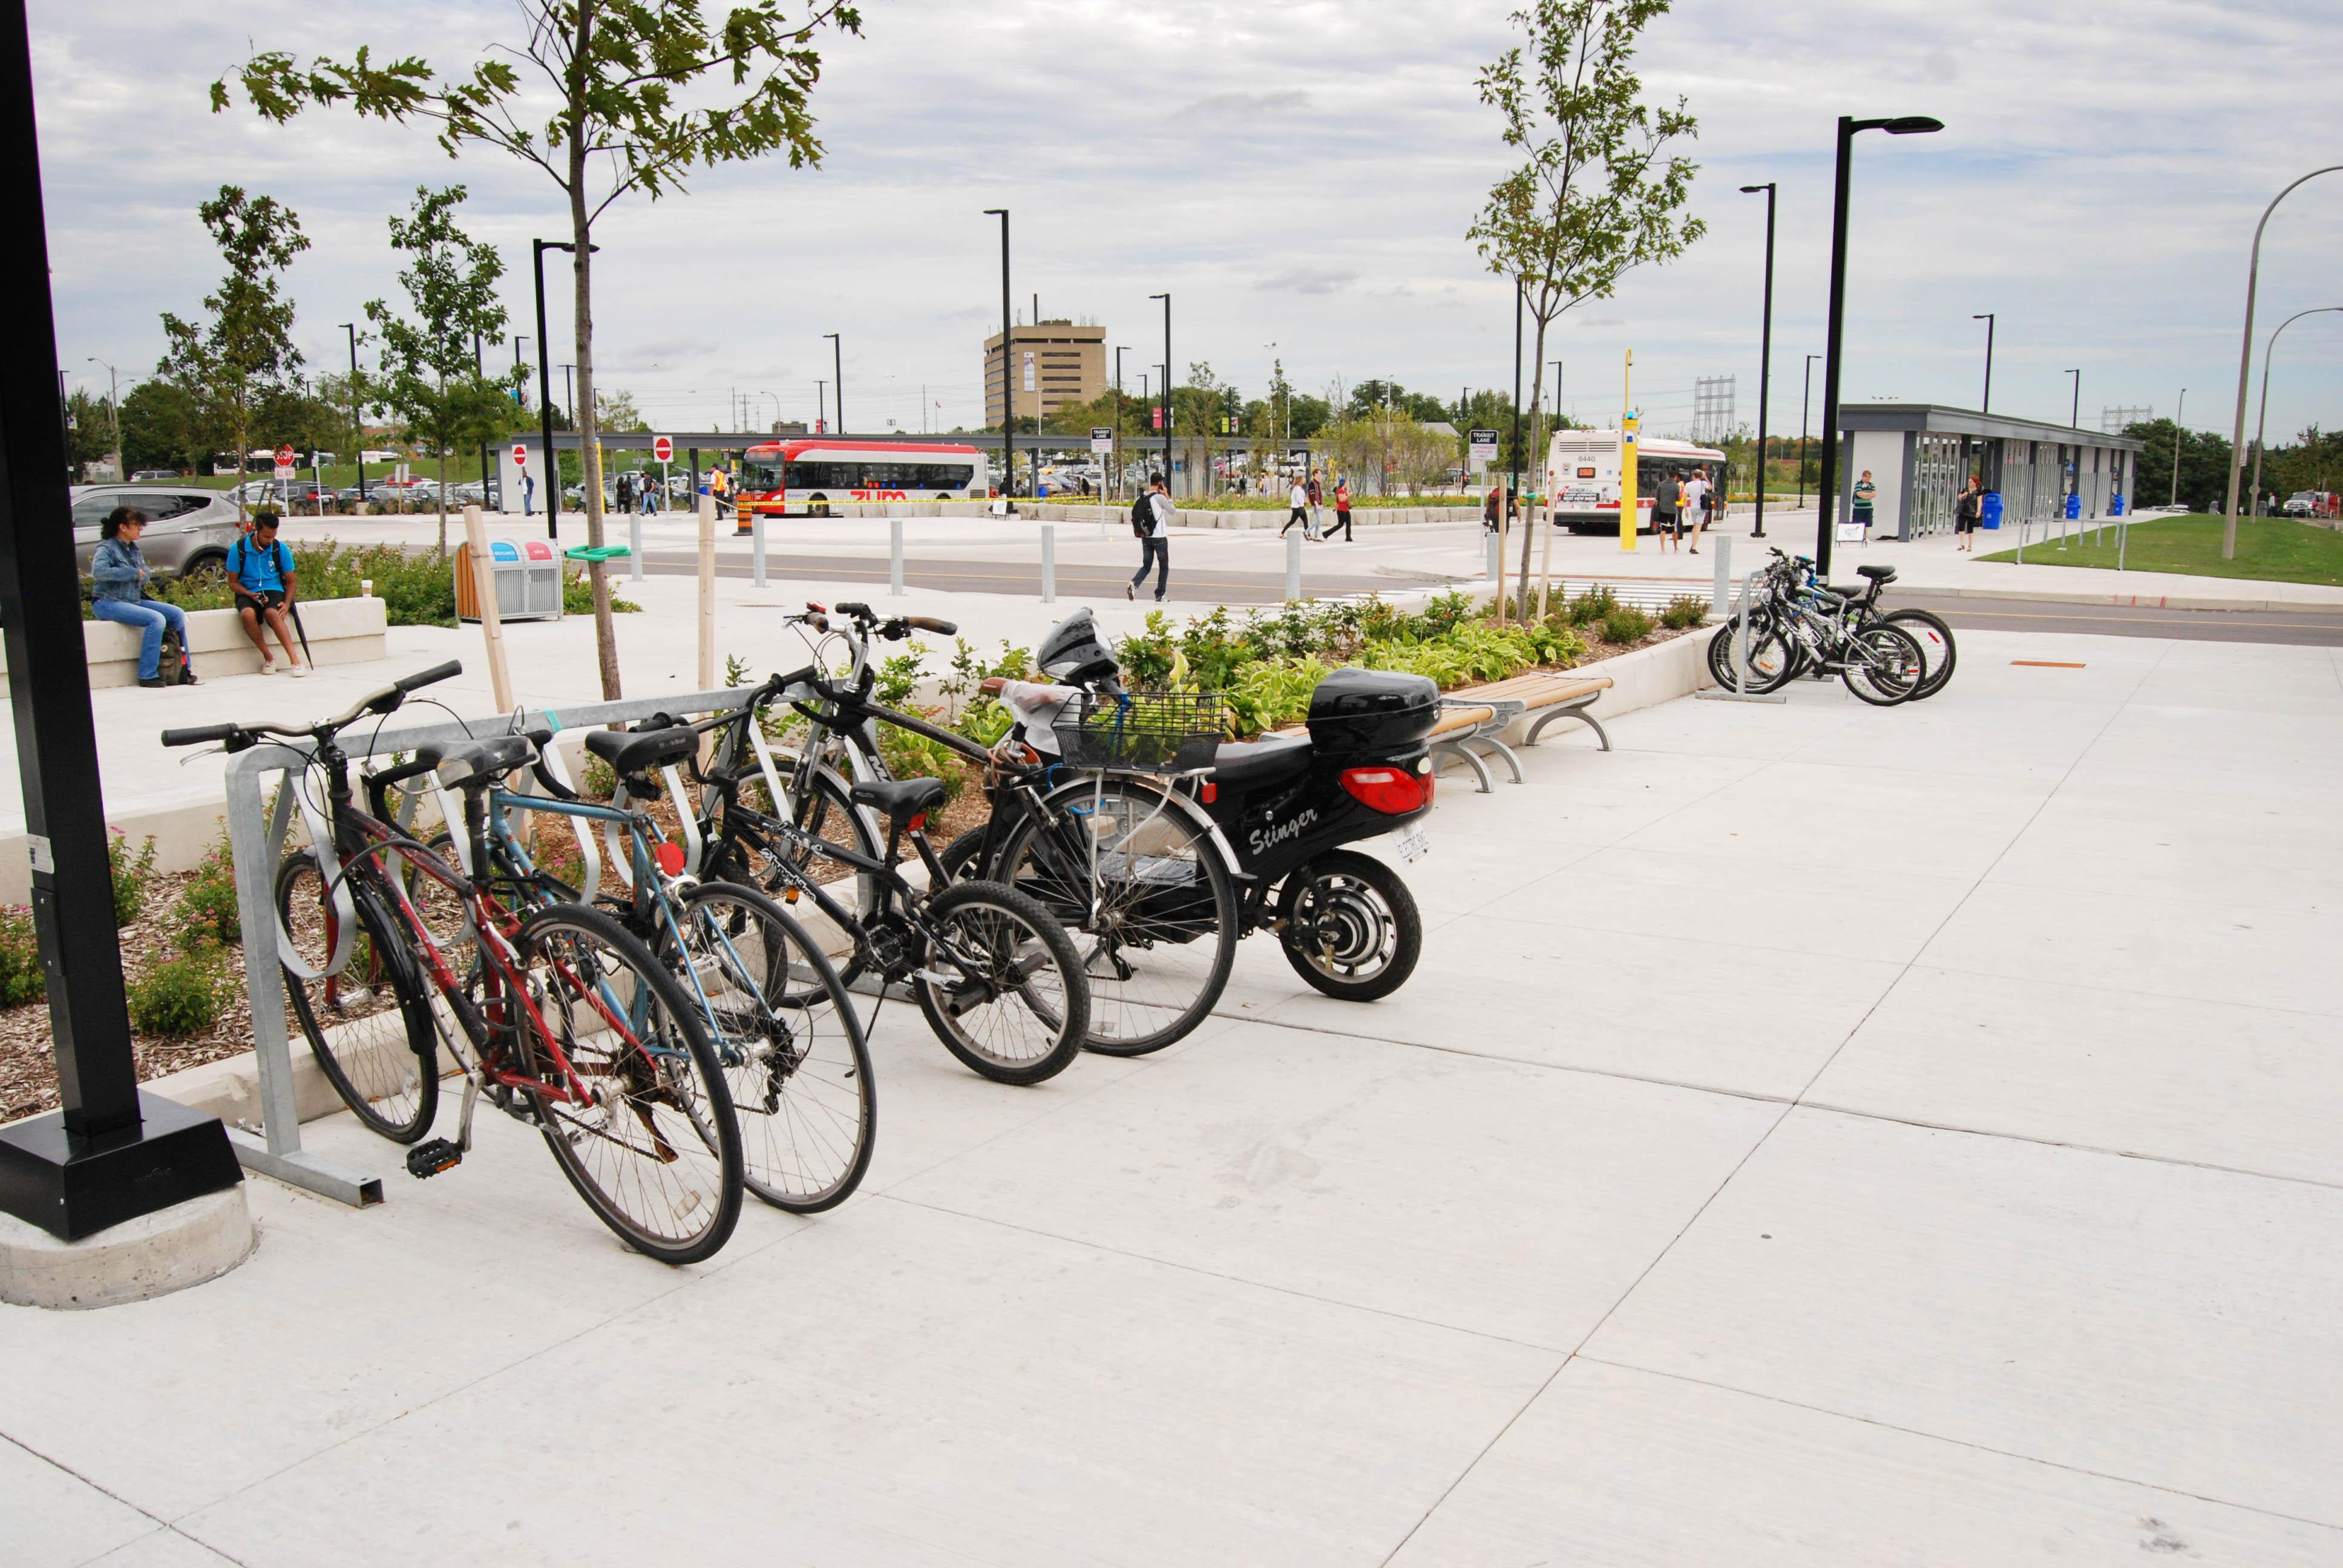 Plan a green commute to campus